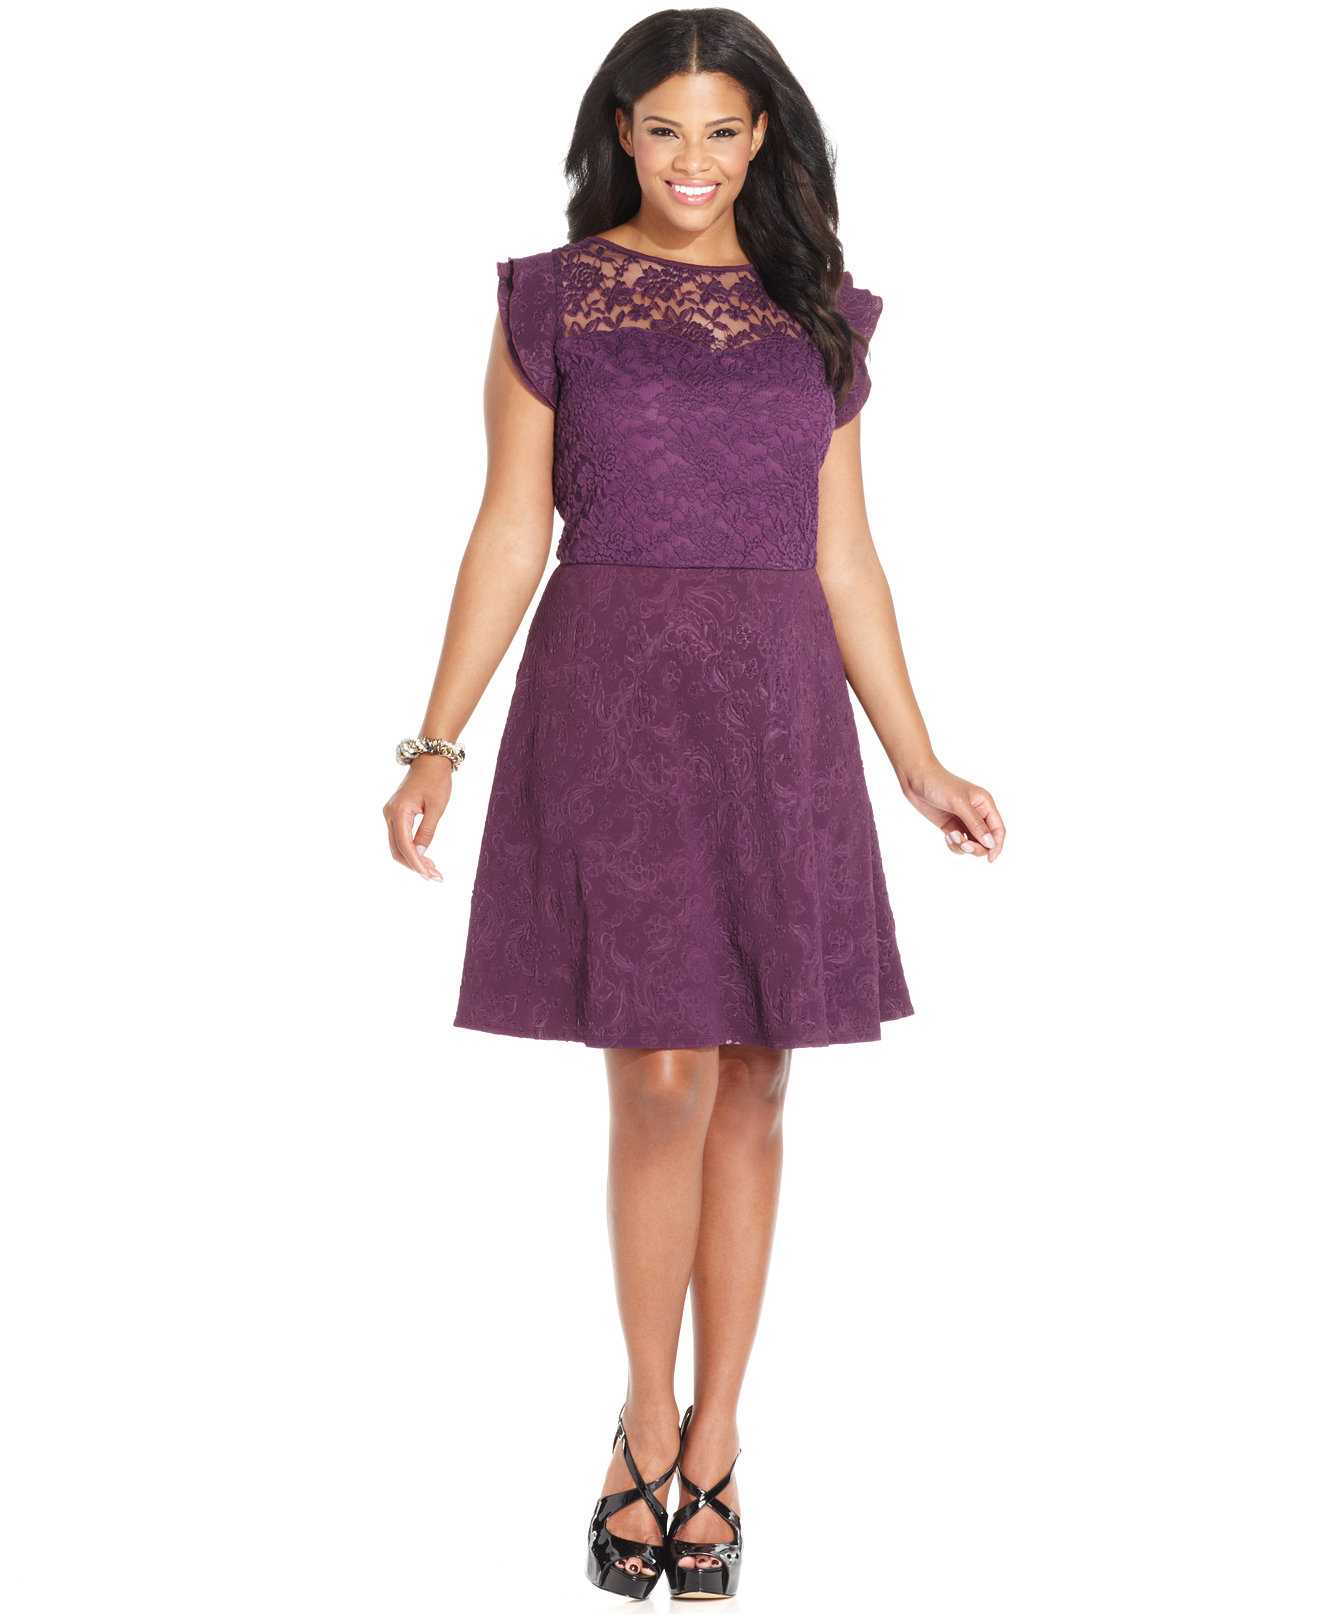 Perfect fit in the hottest dresses. Discover the whole range of Simply Be's plus size dresses from plus size maxi and shift to work and formal. No matter whether you're looking for seasonal sun or party dresses, something to shake up a formal event and special occasion or a classic, all year round maxi dress, we got something for you.